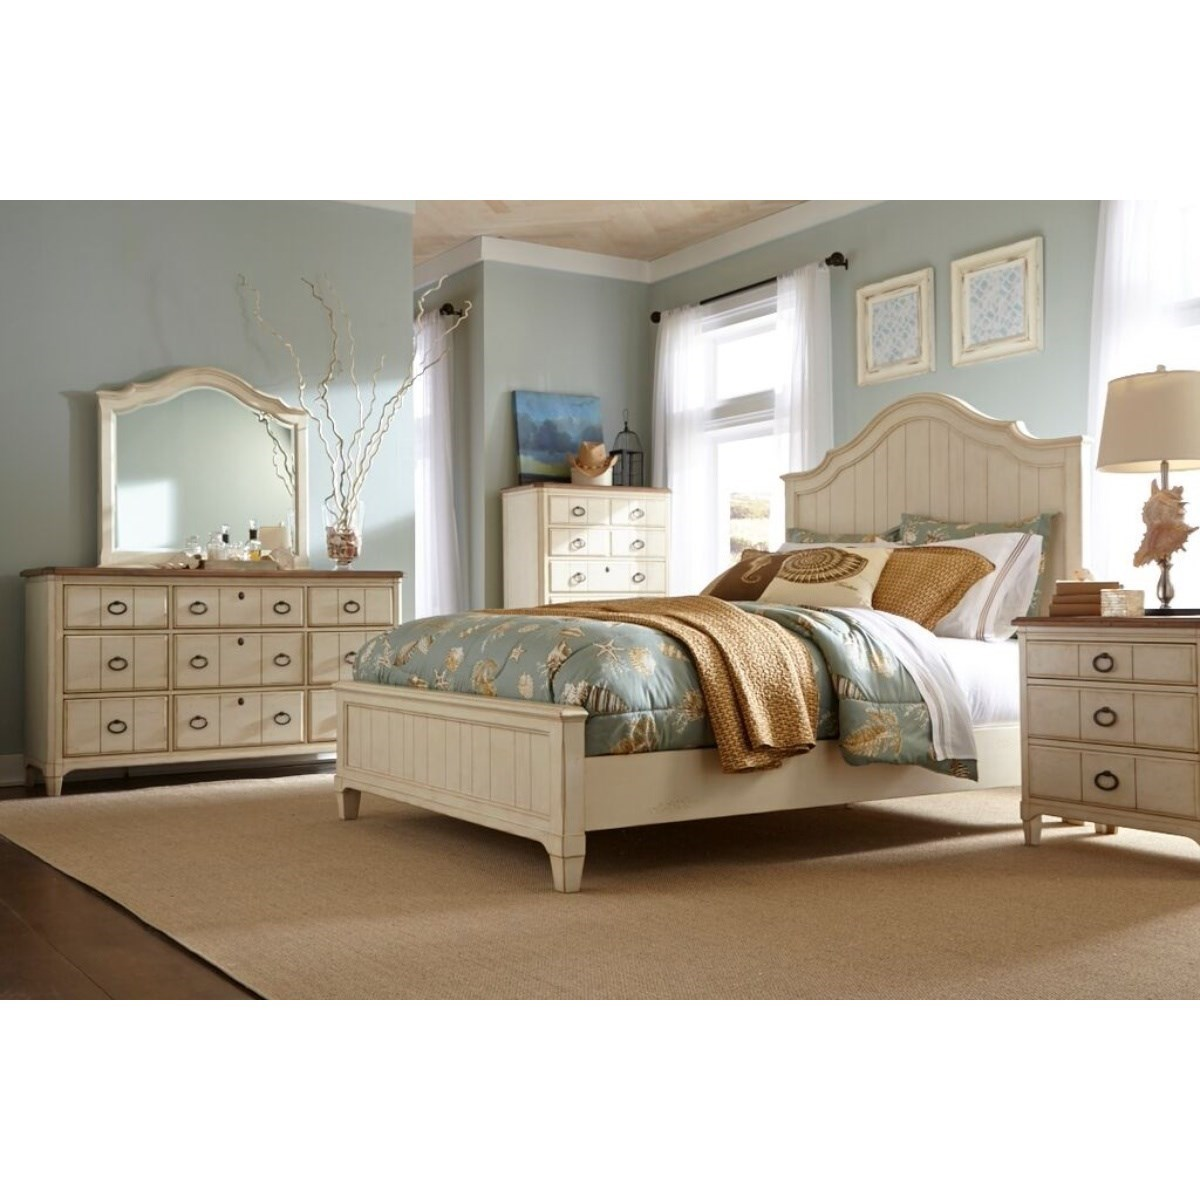 Palmetto Home Furniture Bedroom on pottery barn furniture, adirondack home furniture, plantation home furniture,